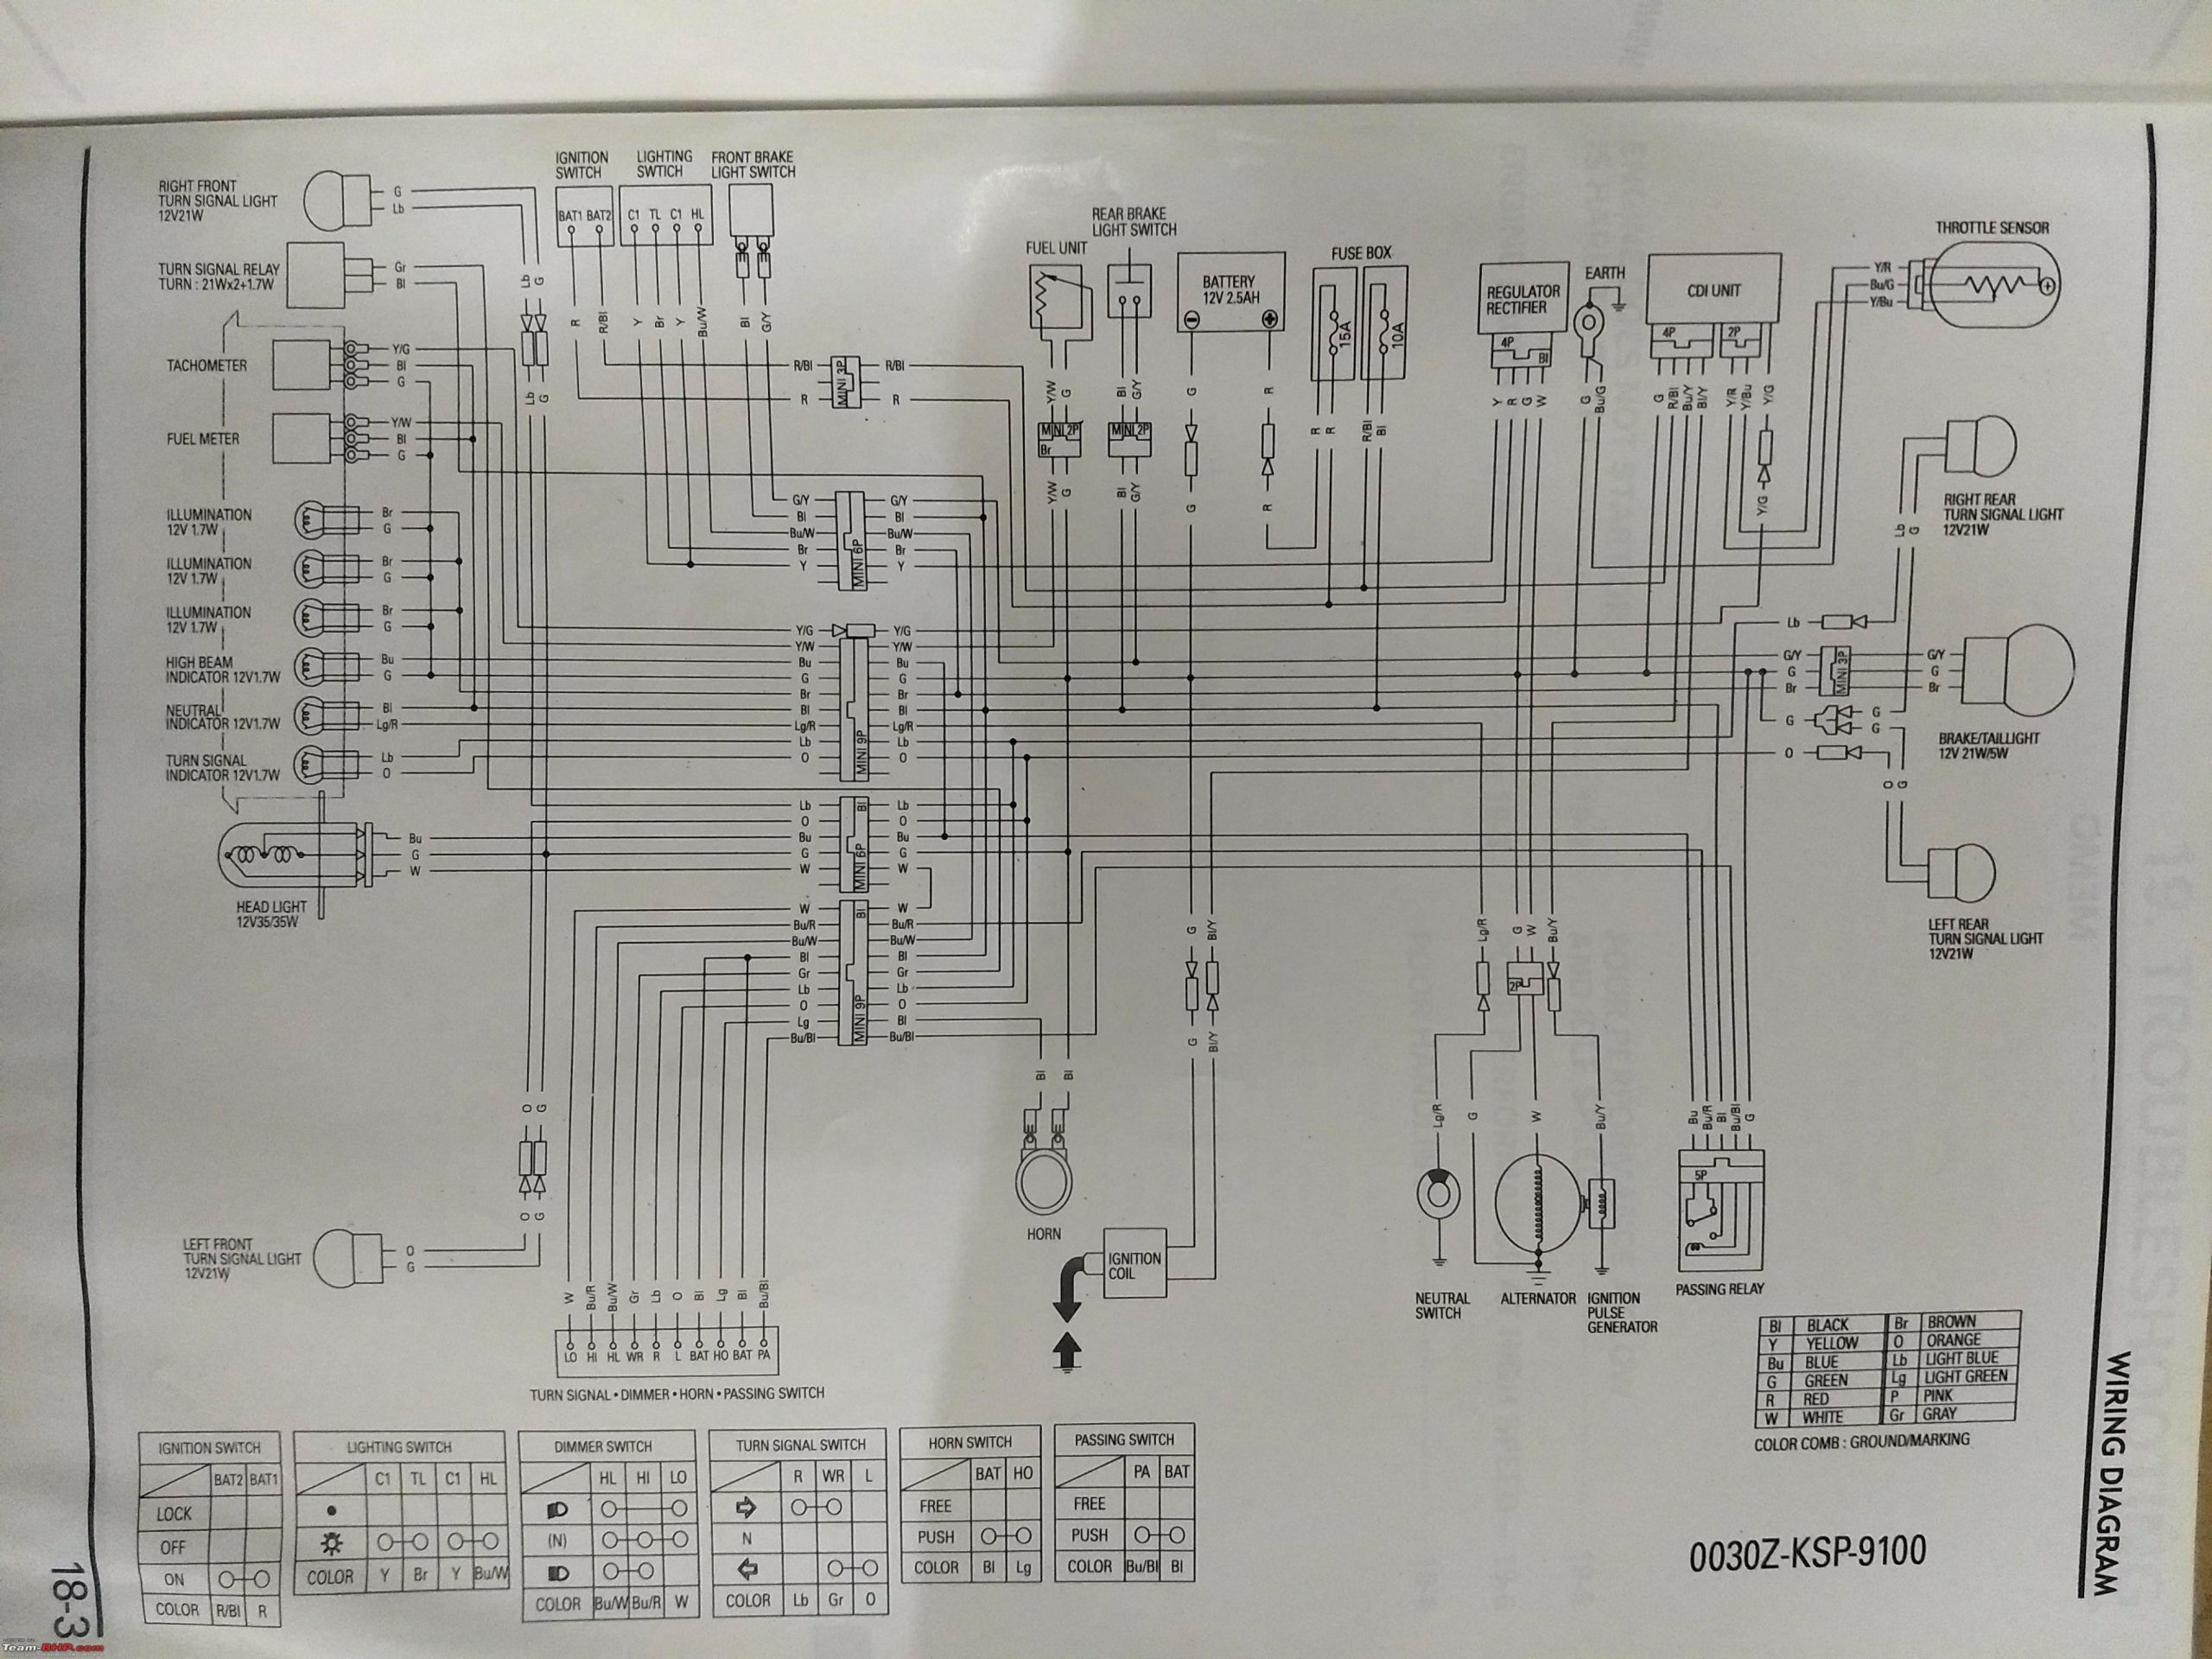 Hero Honda Engine Diagram Free Download In 2020 Diagram Design Electrical Wiring Diagram Diagram